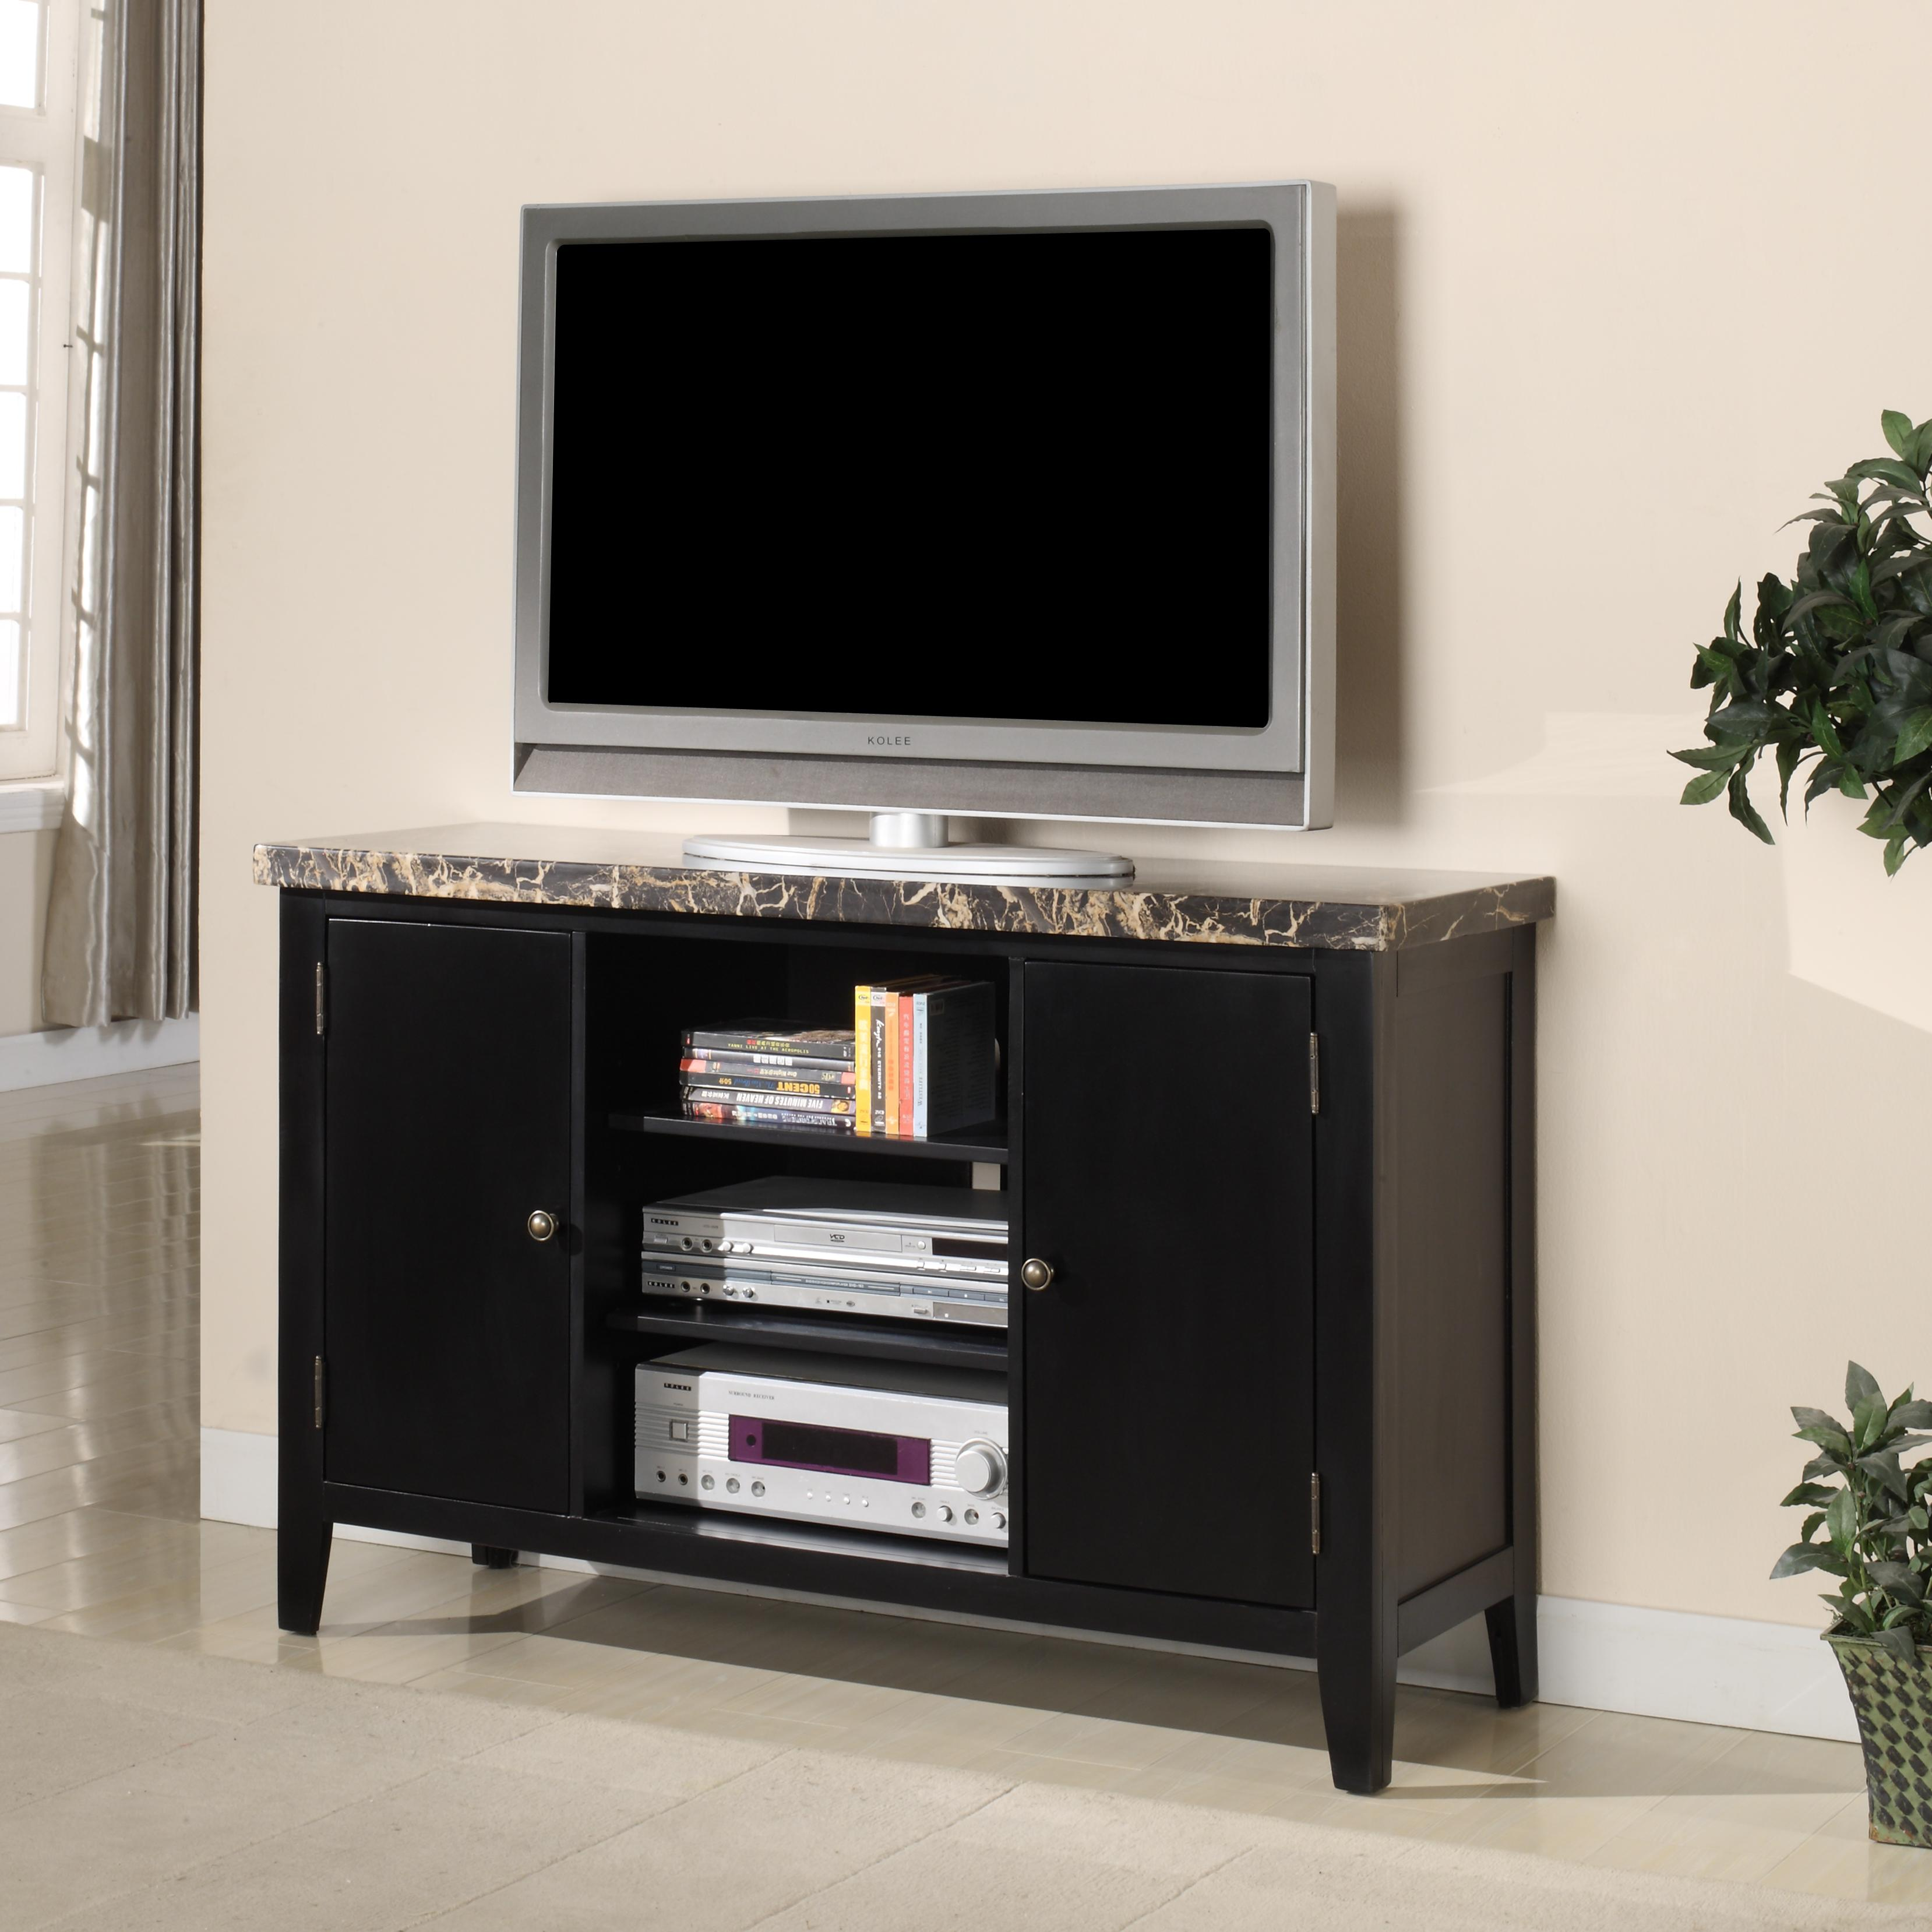 EC032 TV Stand by Lifestyle at Furniture Fair - North Carolina